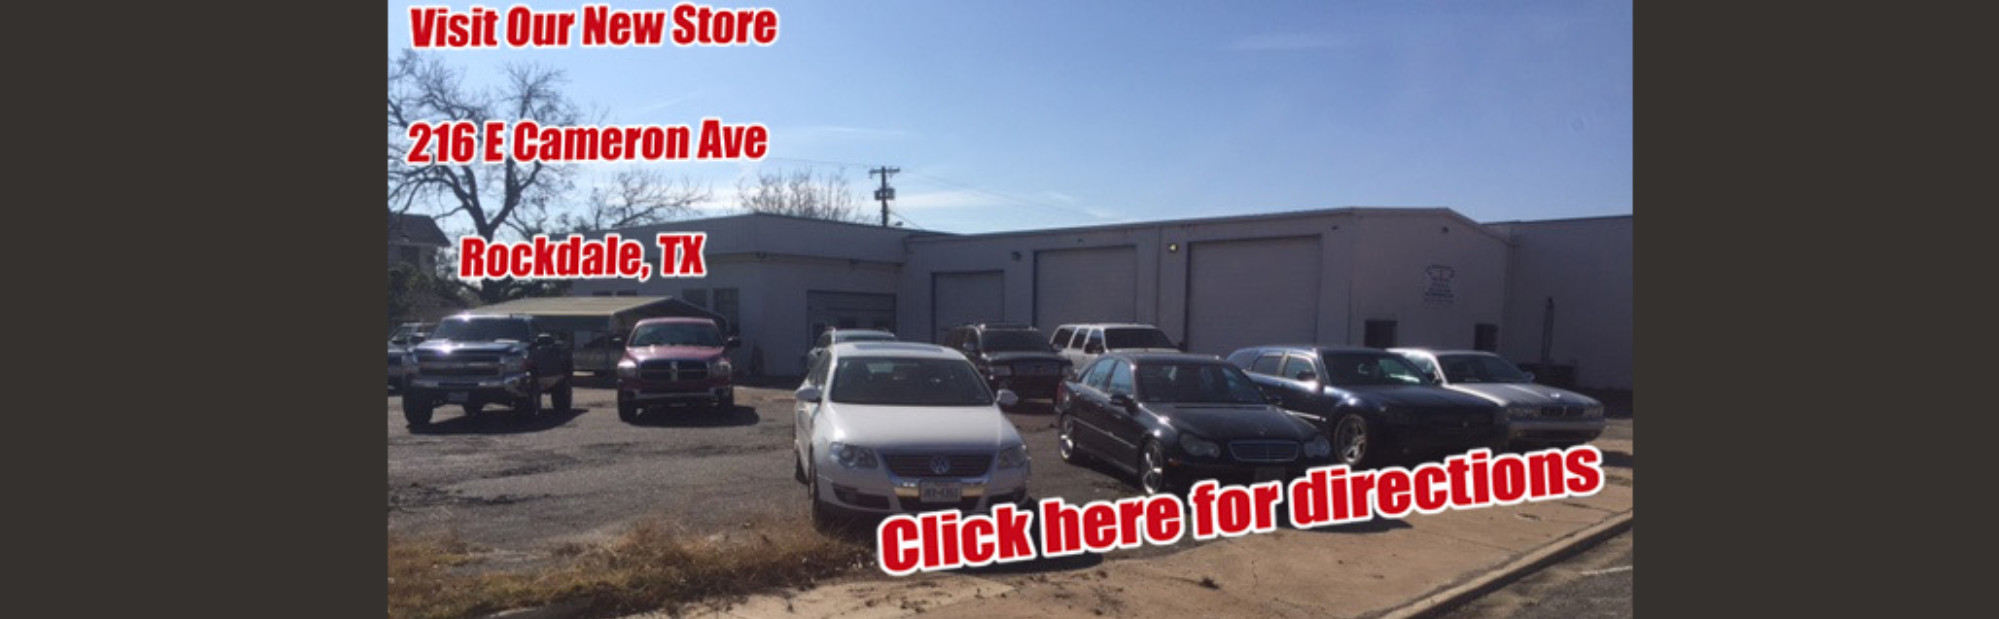 Home Page Modern 2 Muscle Auto Sales Llc Auto Dealership In Rockdale Texas